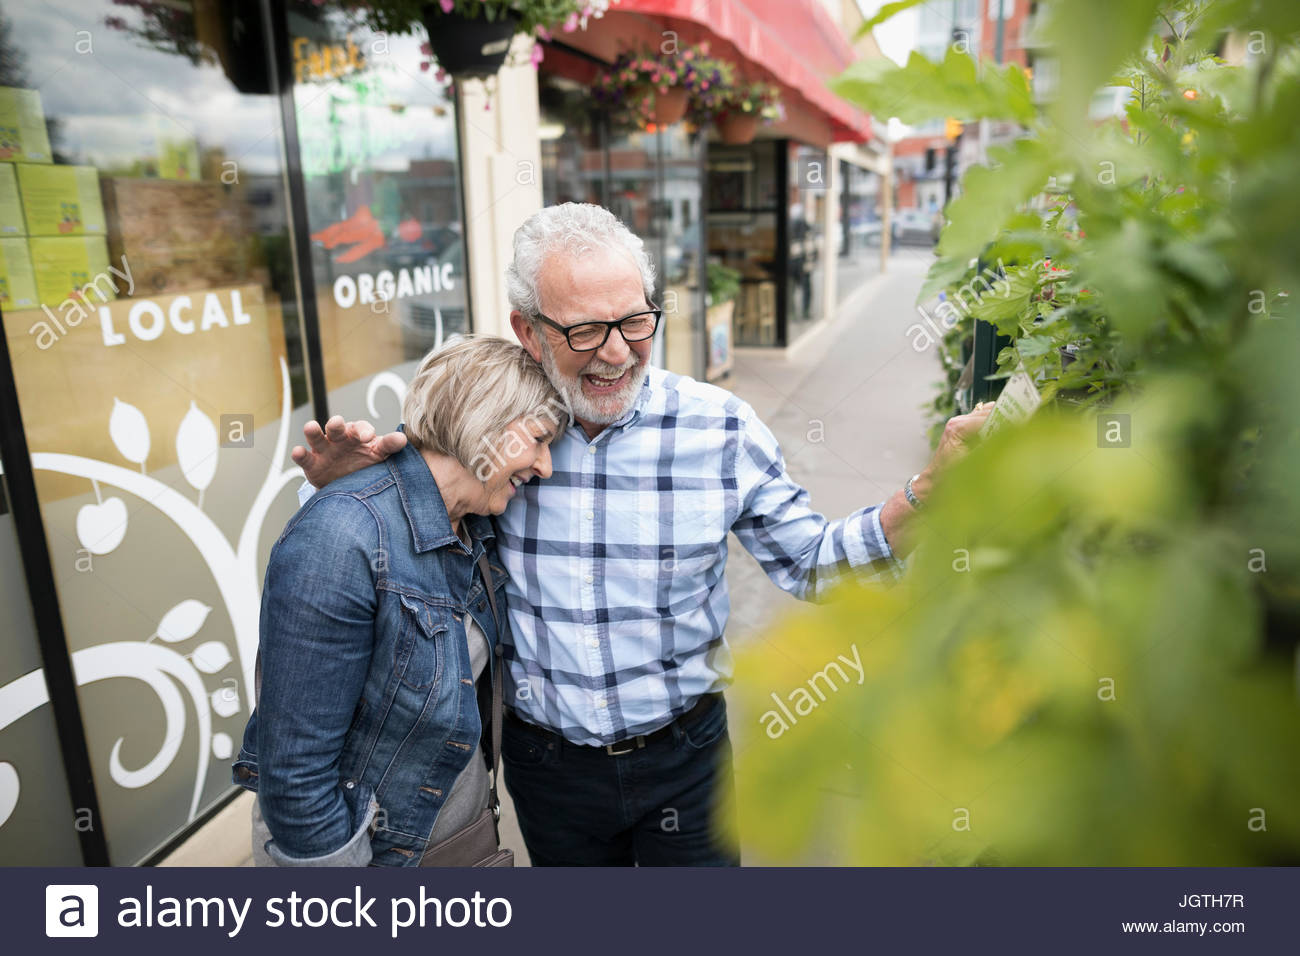 Laughing, affectionate senior couple shopping for plants at urban storefront sidewalk - Stock Image